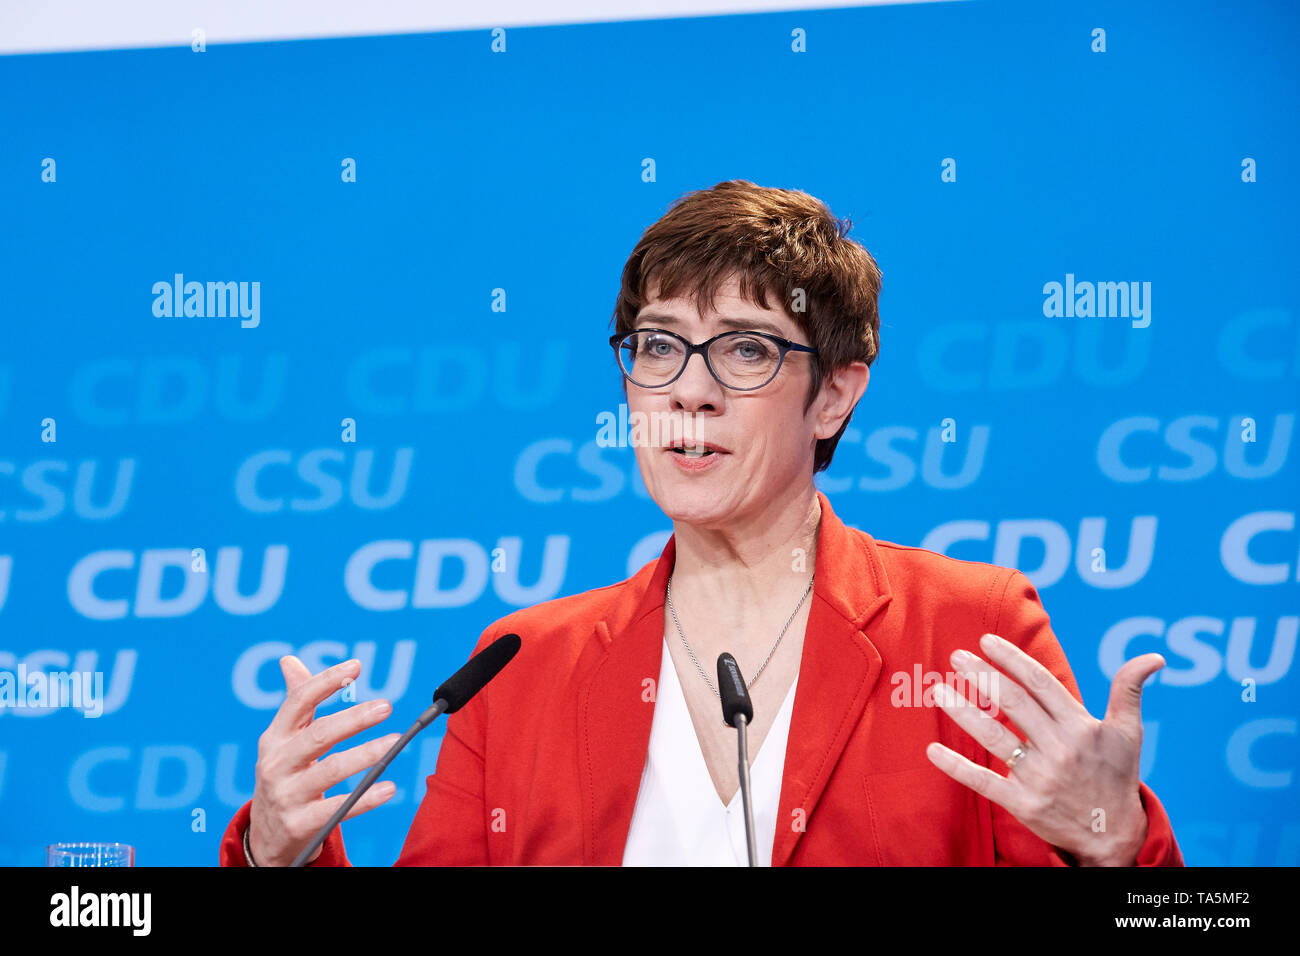 25.03.2019, Berlin, Berlin, Germany - Annegret Kramp-Karrenbauer, chairman of the CDU at a press conference of CDU and CSU on the joint party program  - Stock Image